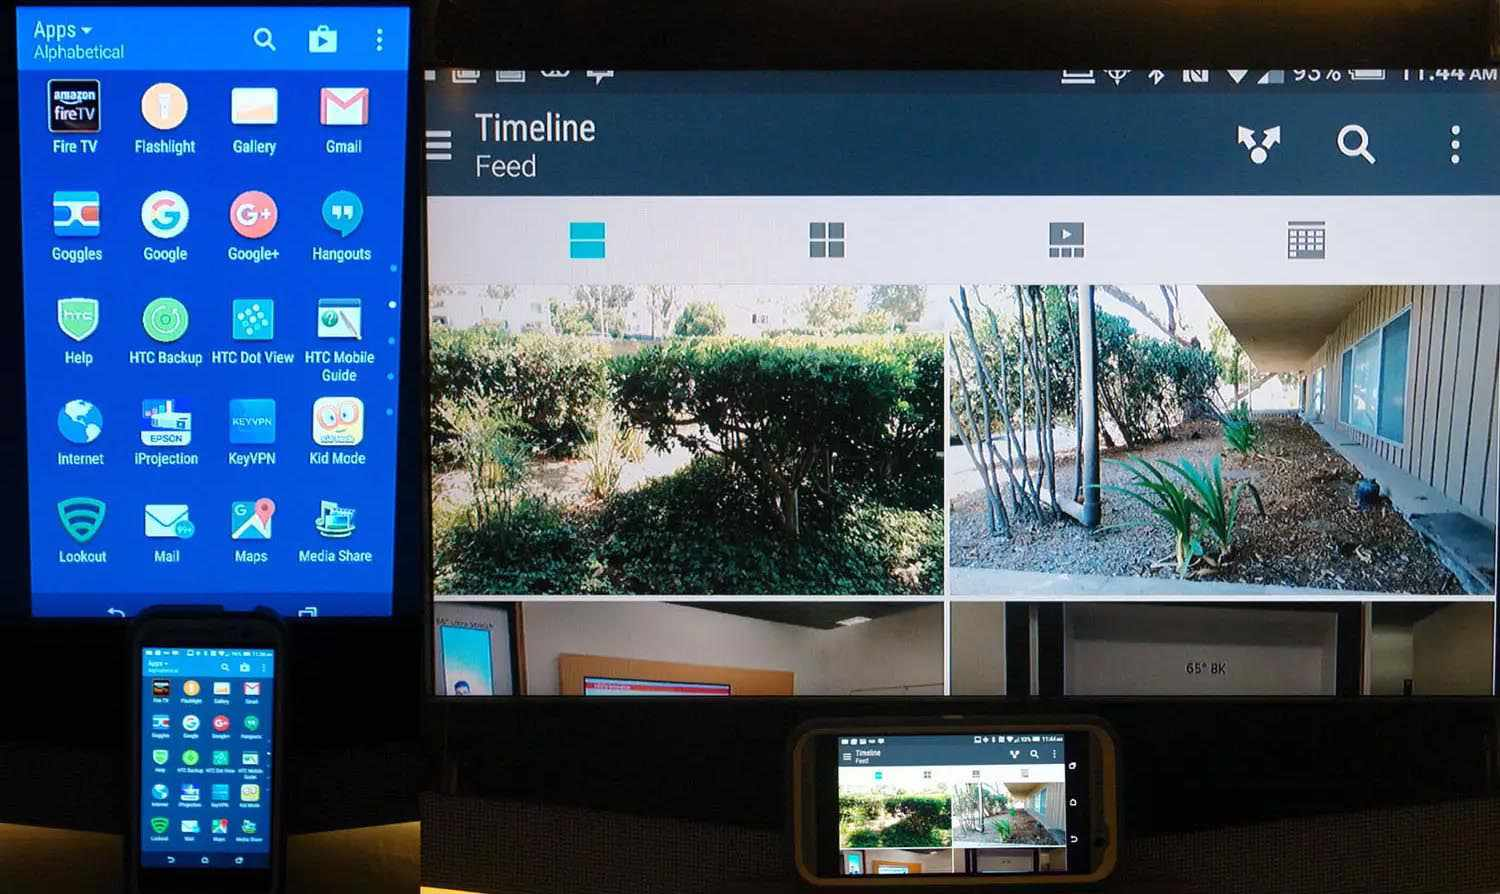 Android Screen Mirroring to TV Examples via Fire TV